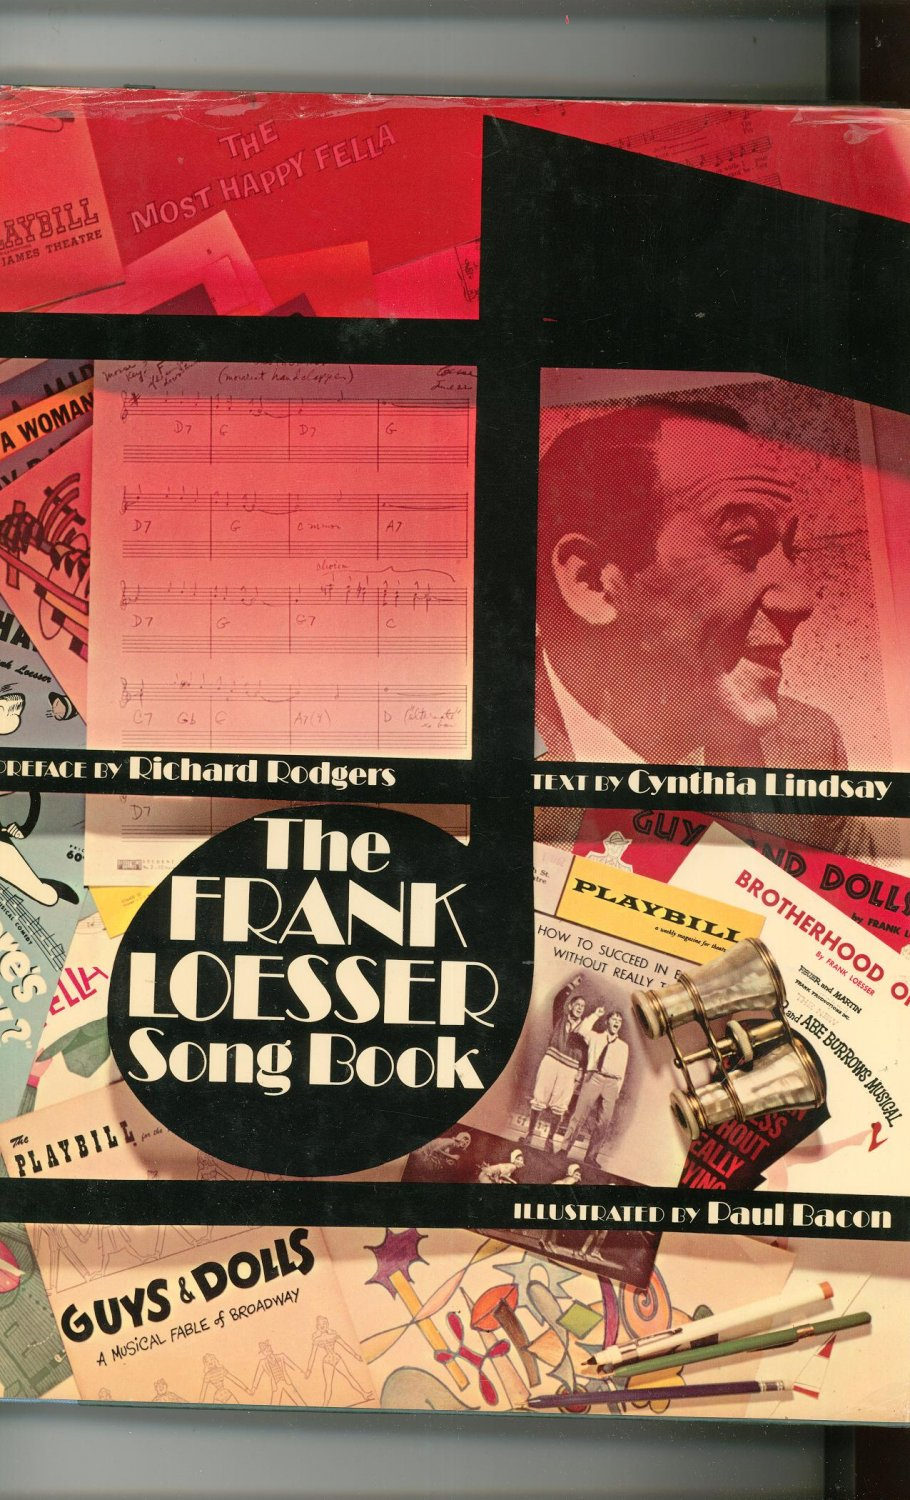 The Frank Loesser Song Book Vintage First Printing Hard Cover Rodgers Lindsay 671208934